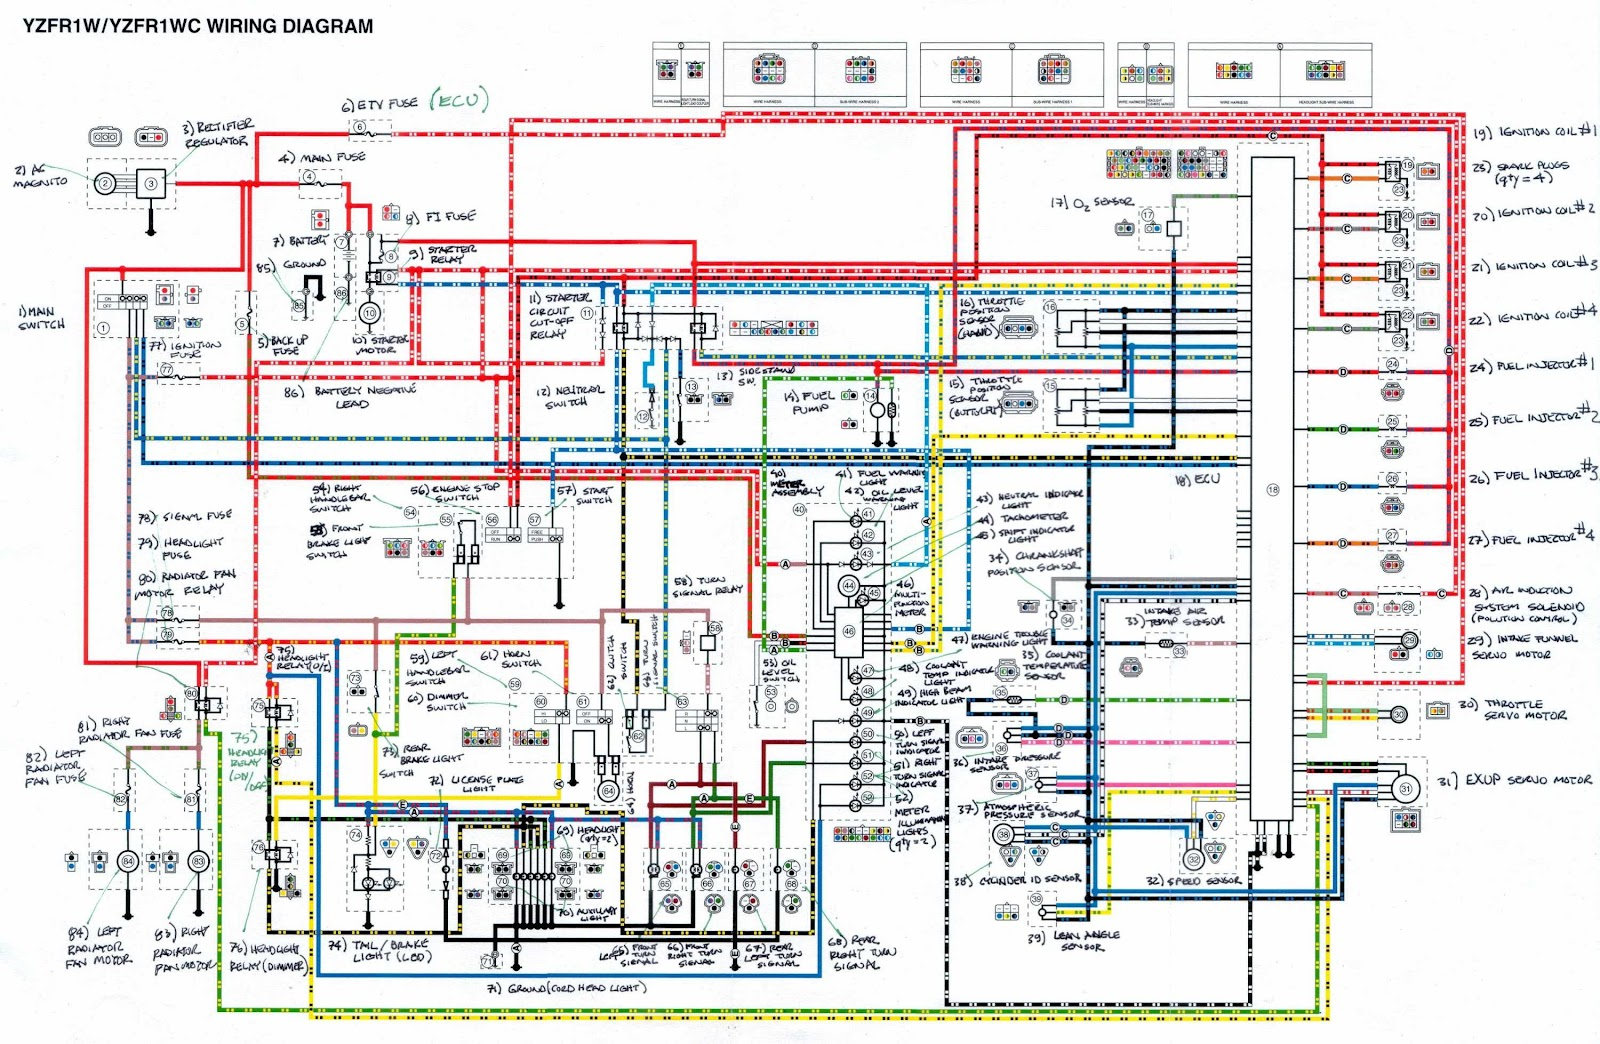 2008 Yamaha R6 Wiring Diagram Car Ford Escape Yzf Tv Igesetze De 04 Yfz 450 Schematic W4 U2022 Rh 2000